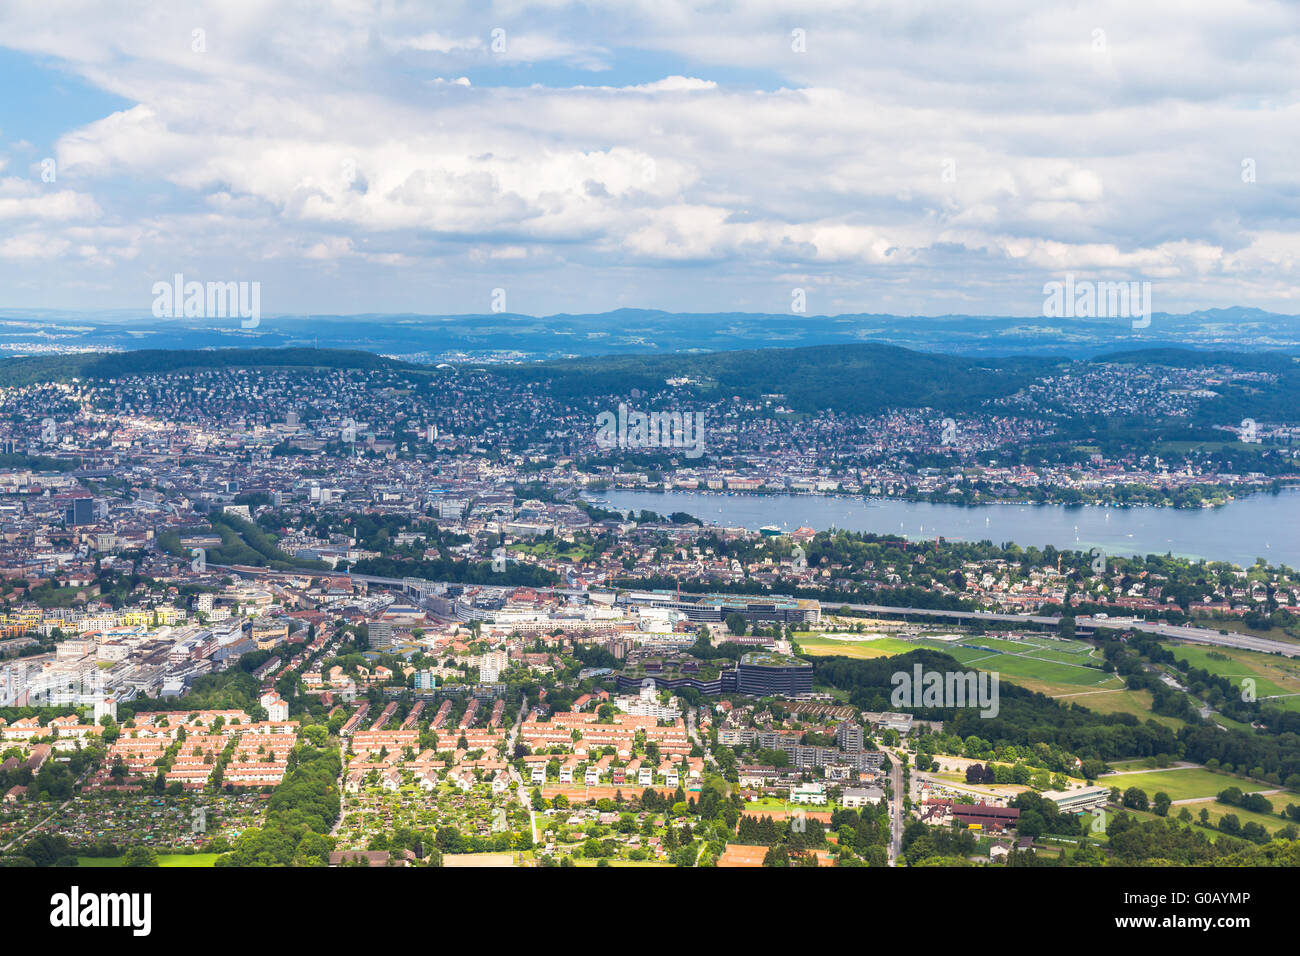 Aerial view of Zurich city and lake from top of Uetliberg, Switzerland - Stock Image